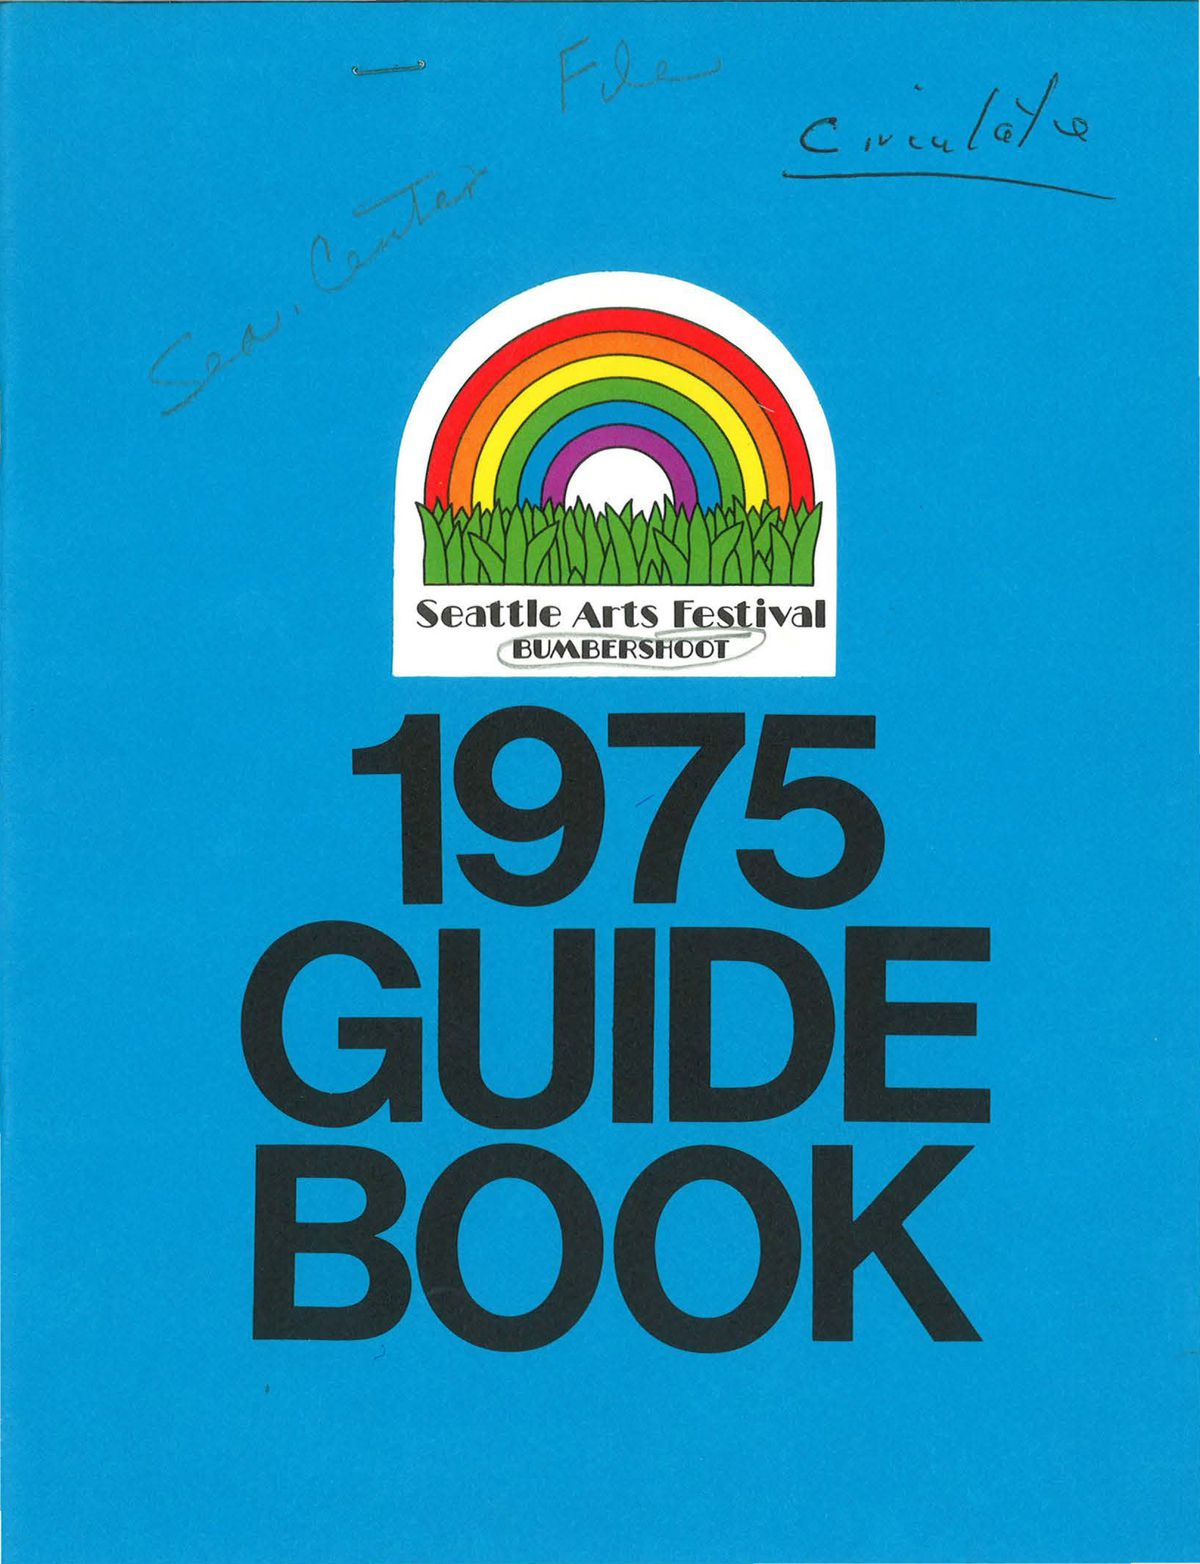 """A blue page has a logo with rainbow over grass that reads """"Seattle Arts Festival BUMBERSHOOT"""" at the top, and """"1975 GUIDE BOOK"""" in large text below."""